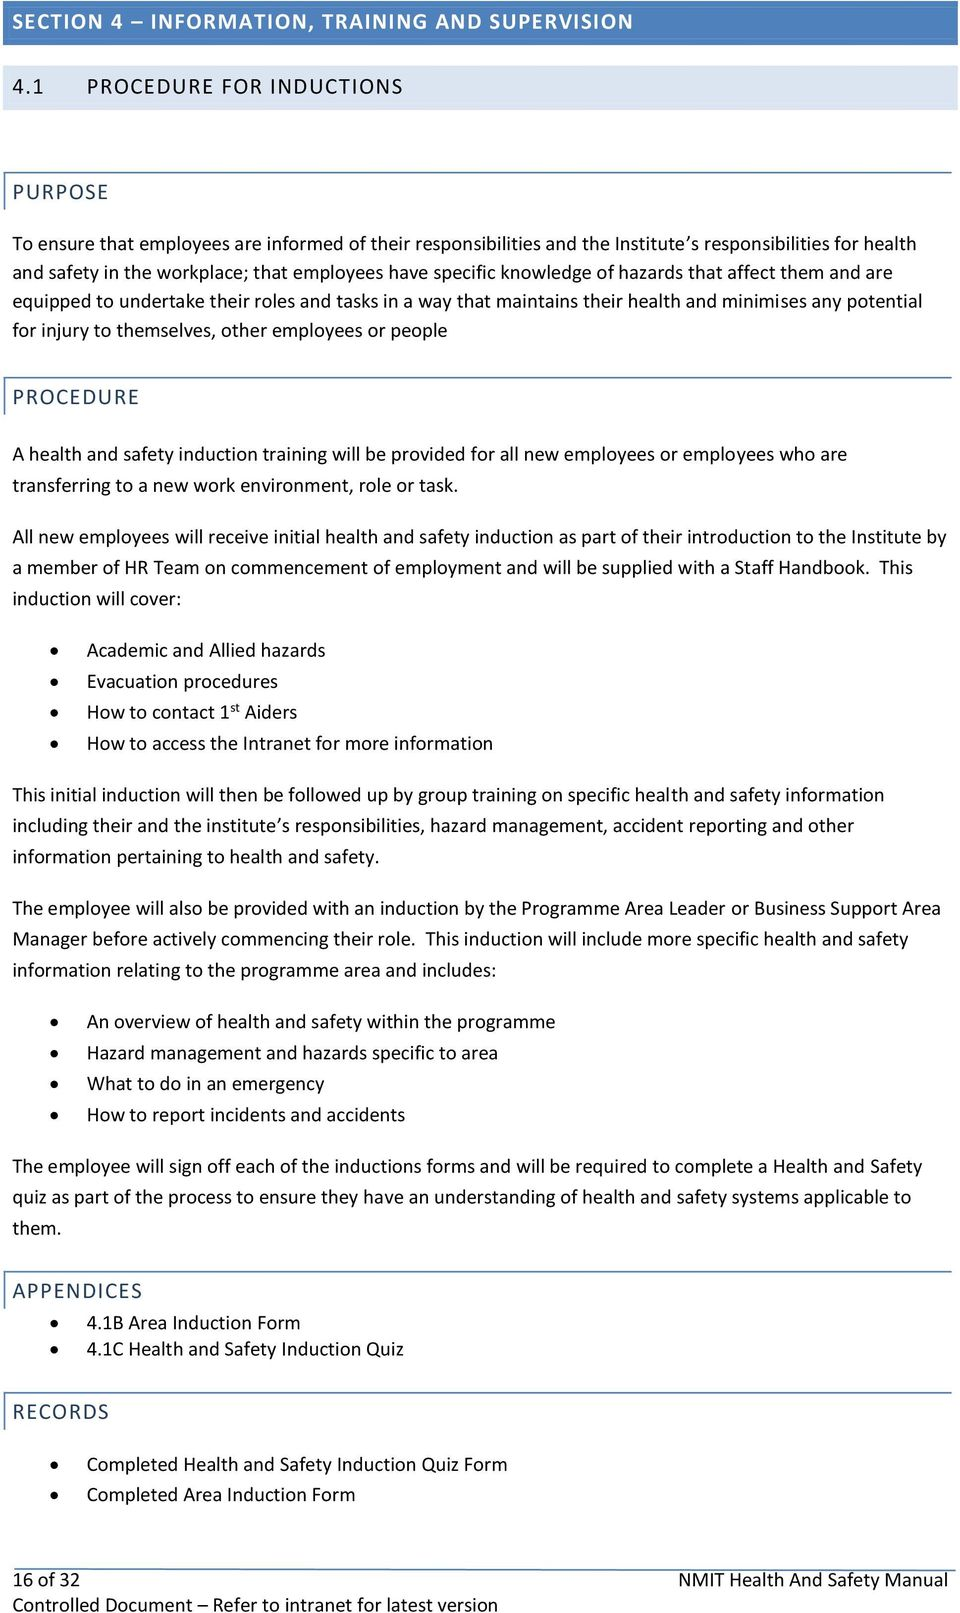 NMIT HEALTH AND SAFETY MANUAL - PDF